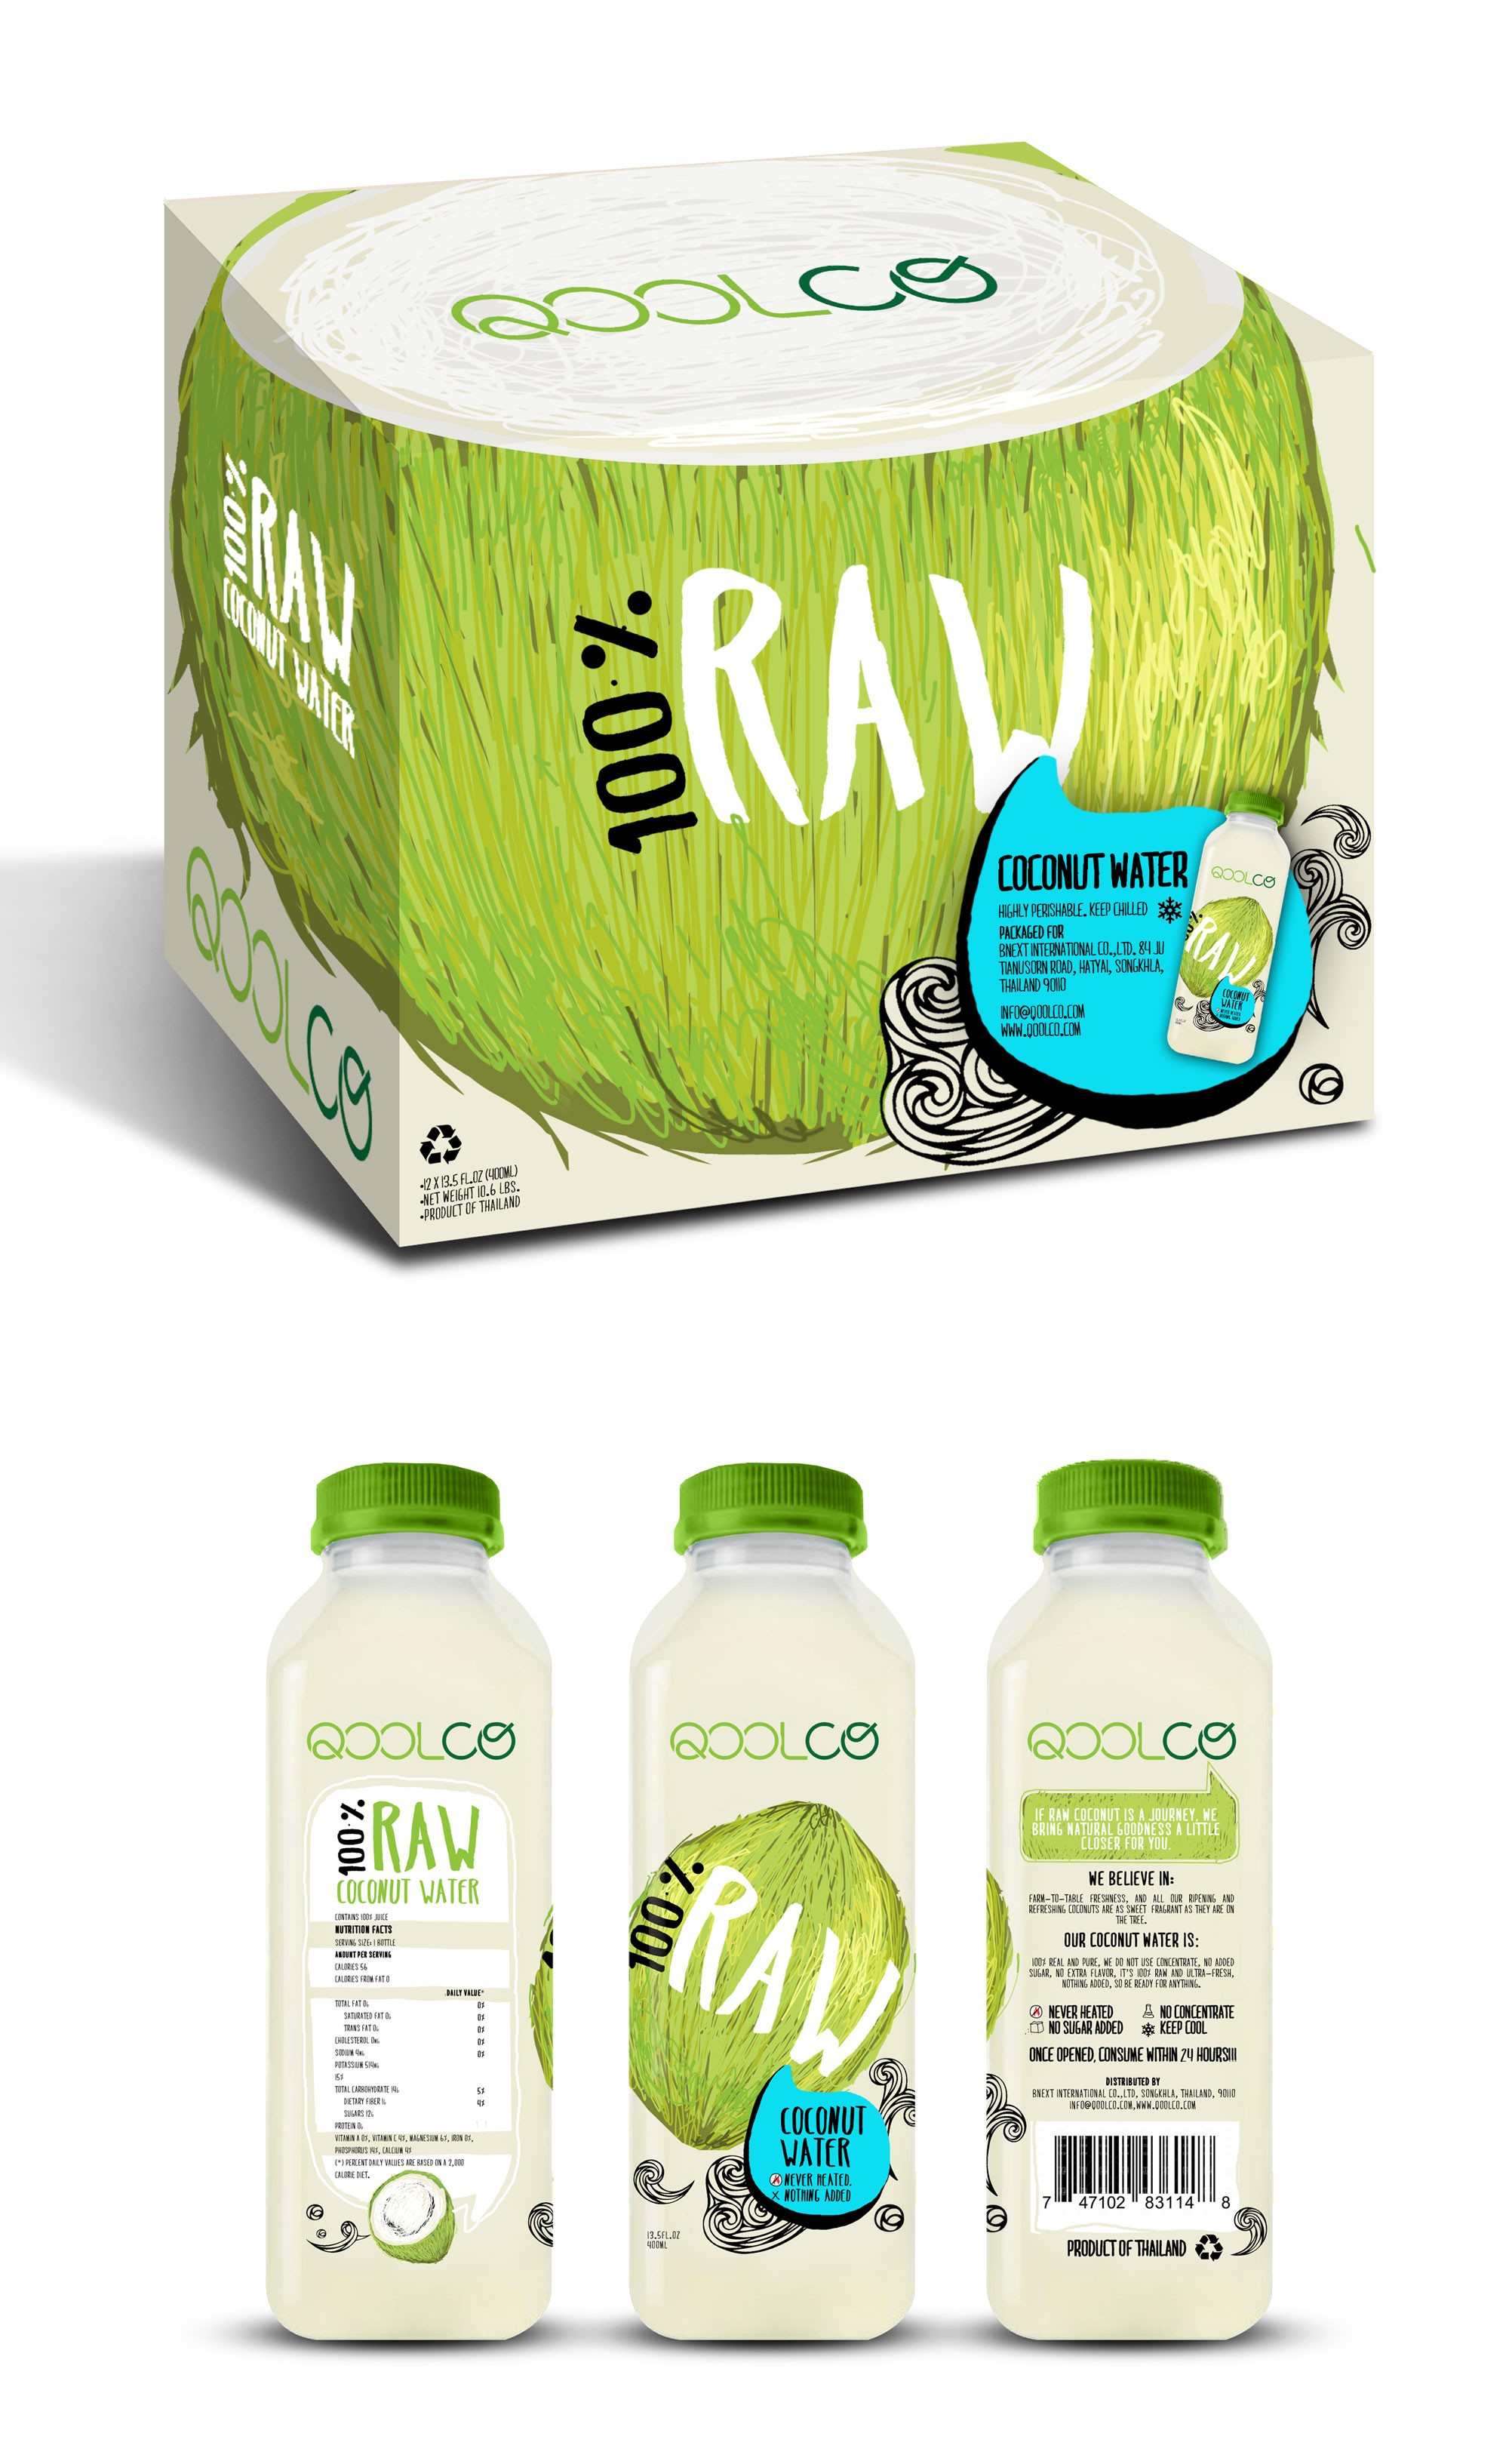 100% RAW COCONUT WATER Packaging Design-Bottle & Box